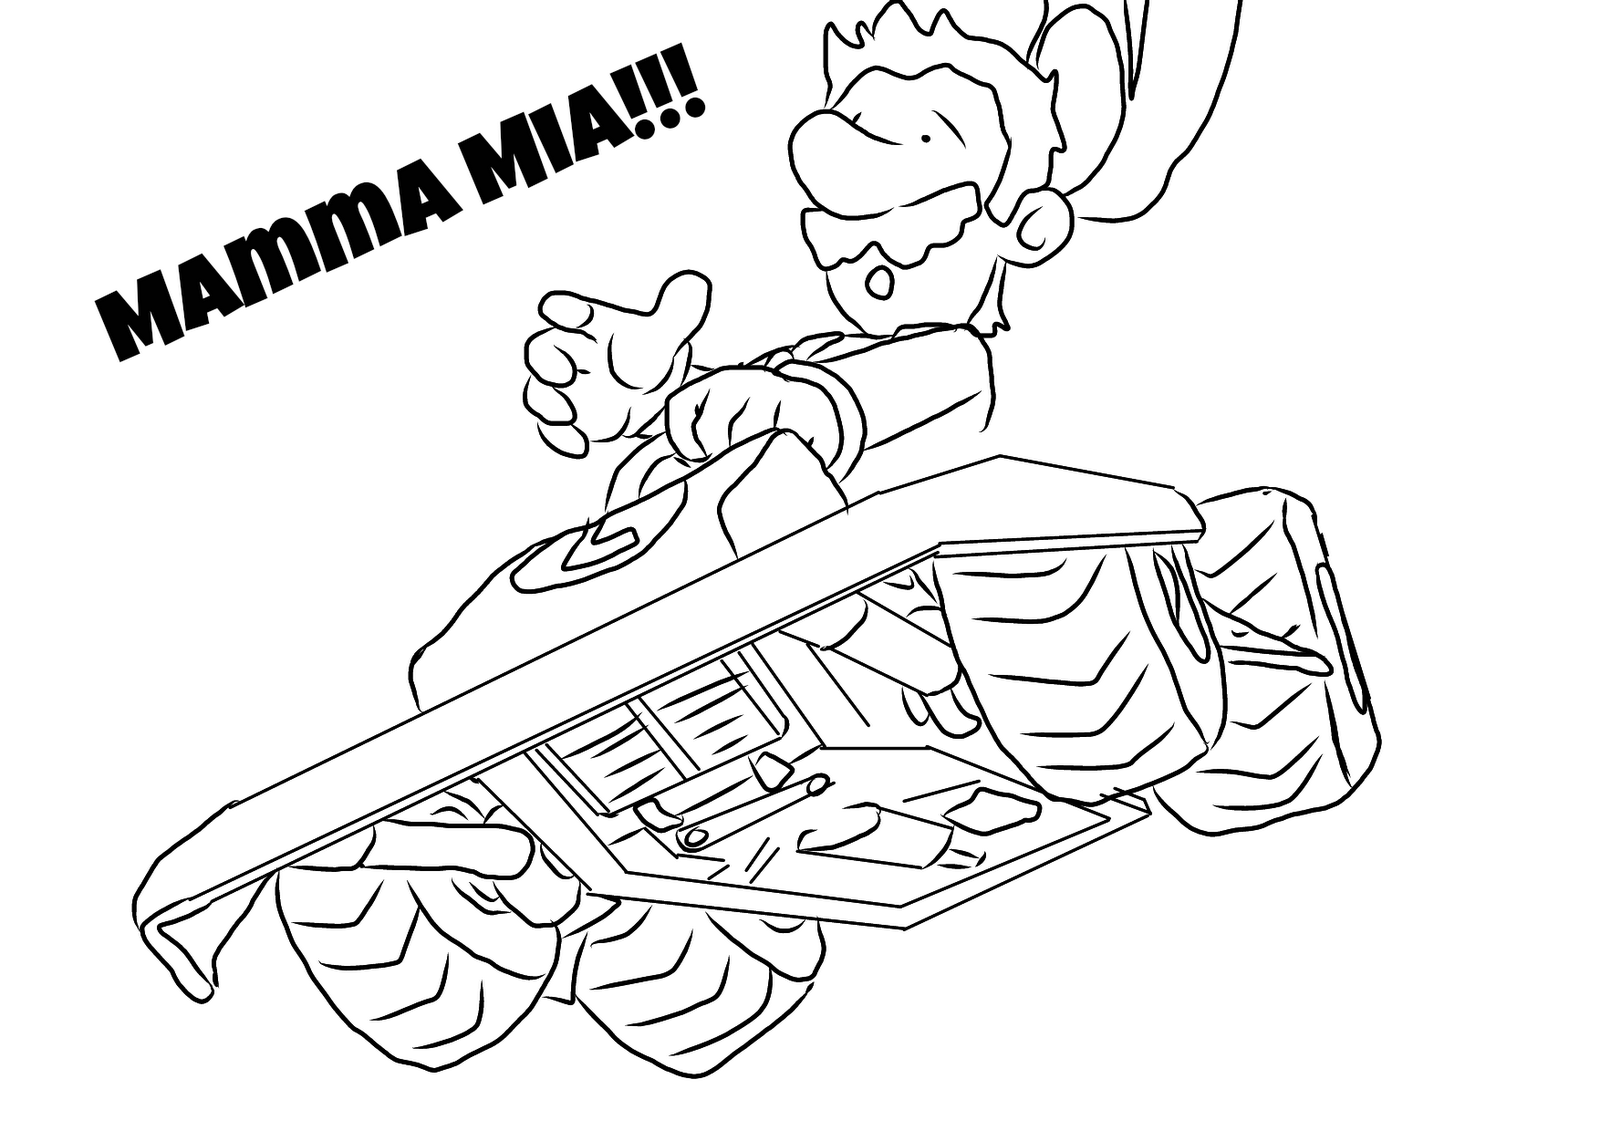 mario kart coloring pages free - photo#29